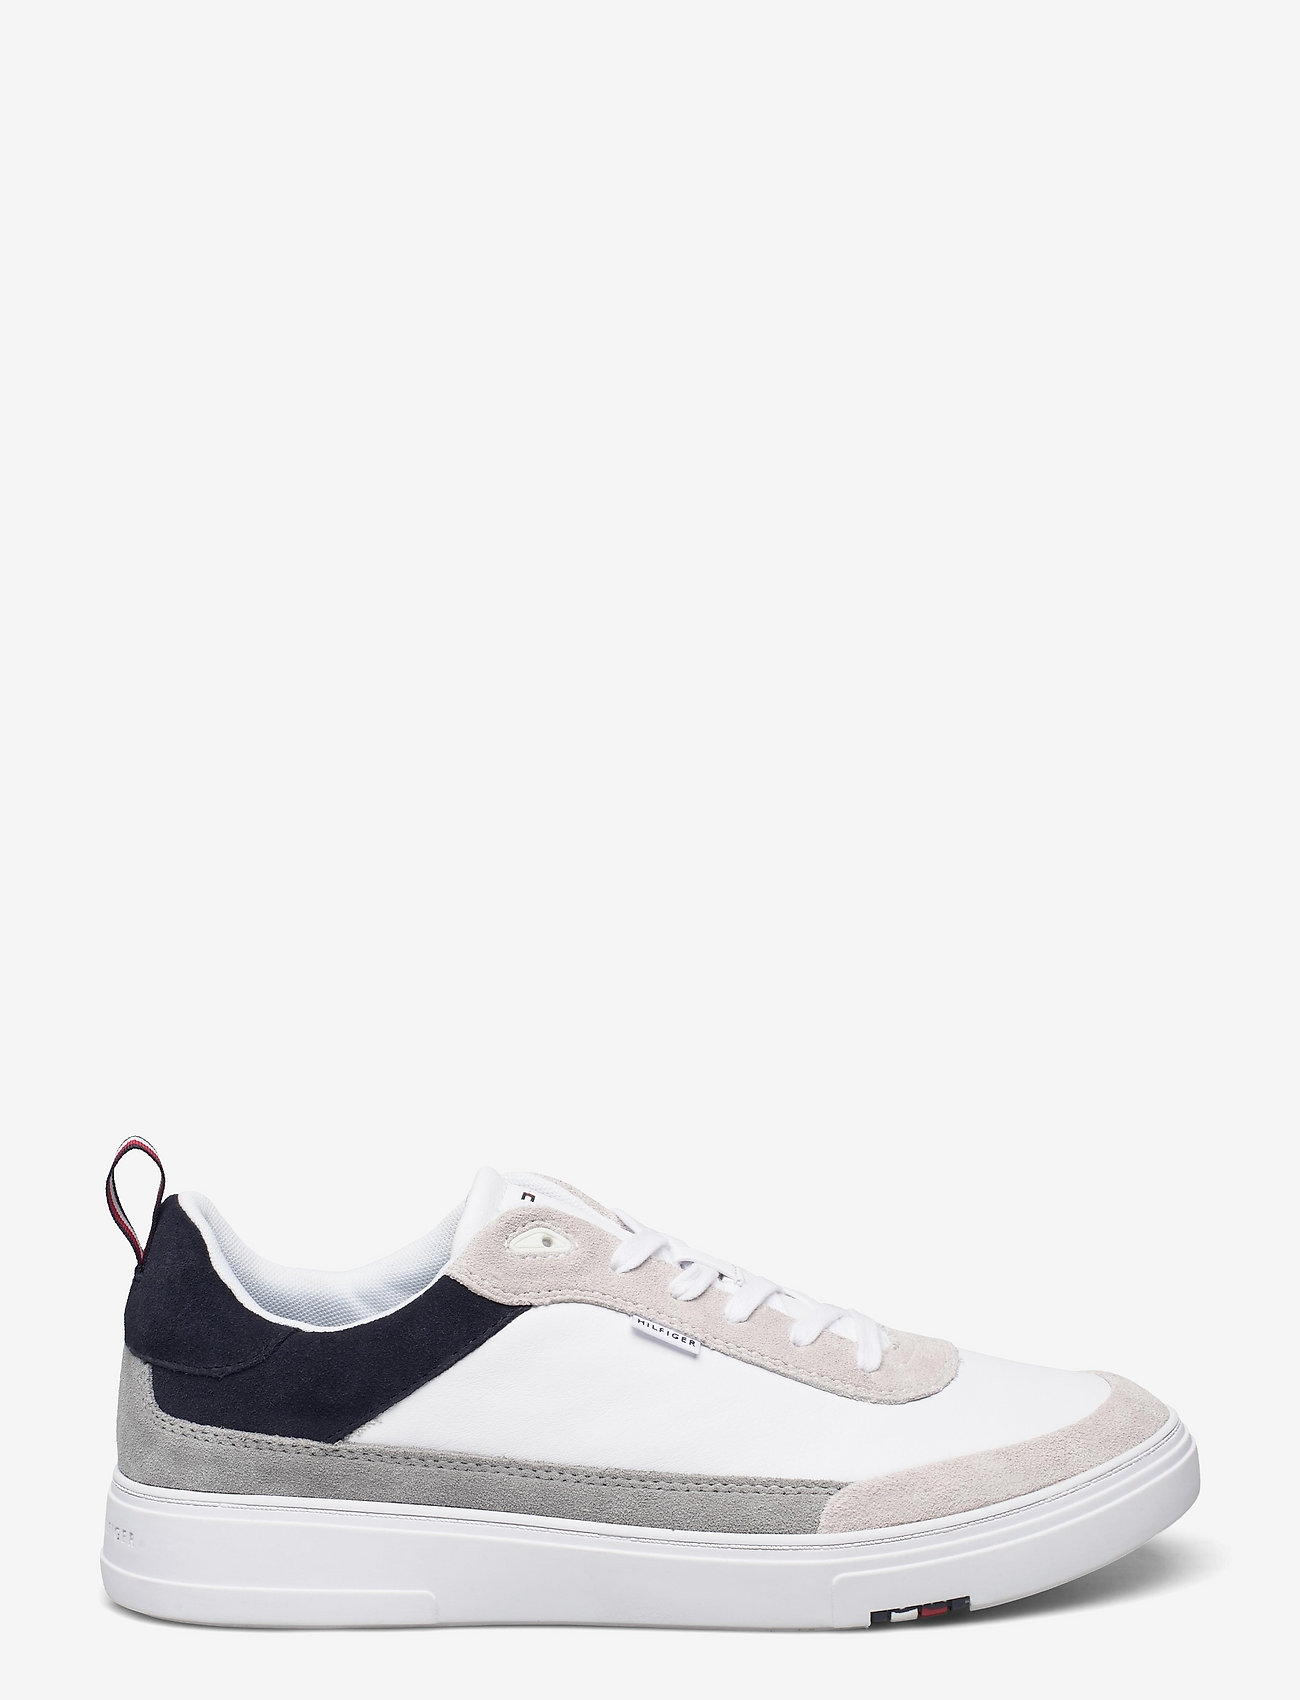 Tommy Hilfiger - MODERN CUPSOLE LEATHER MIX - low tops - desert sky - 1